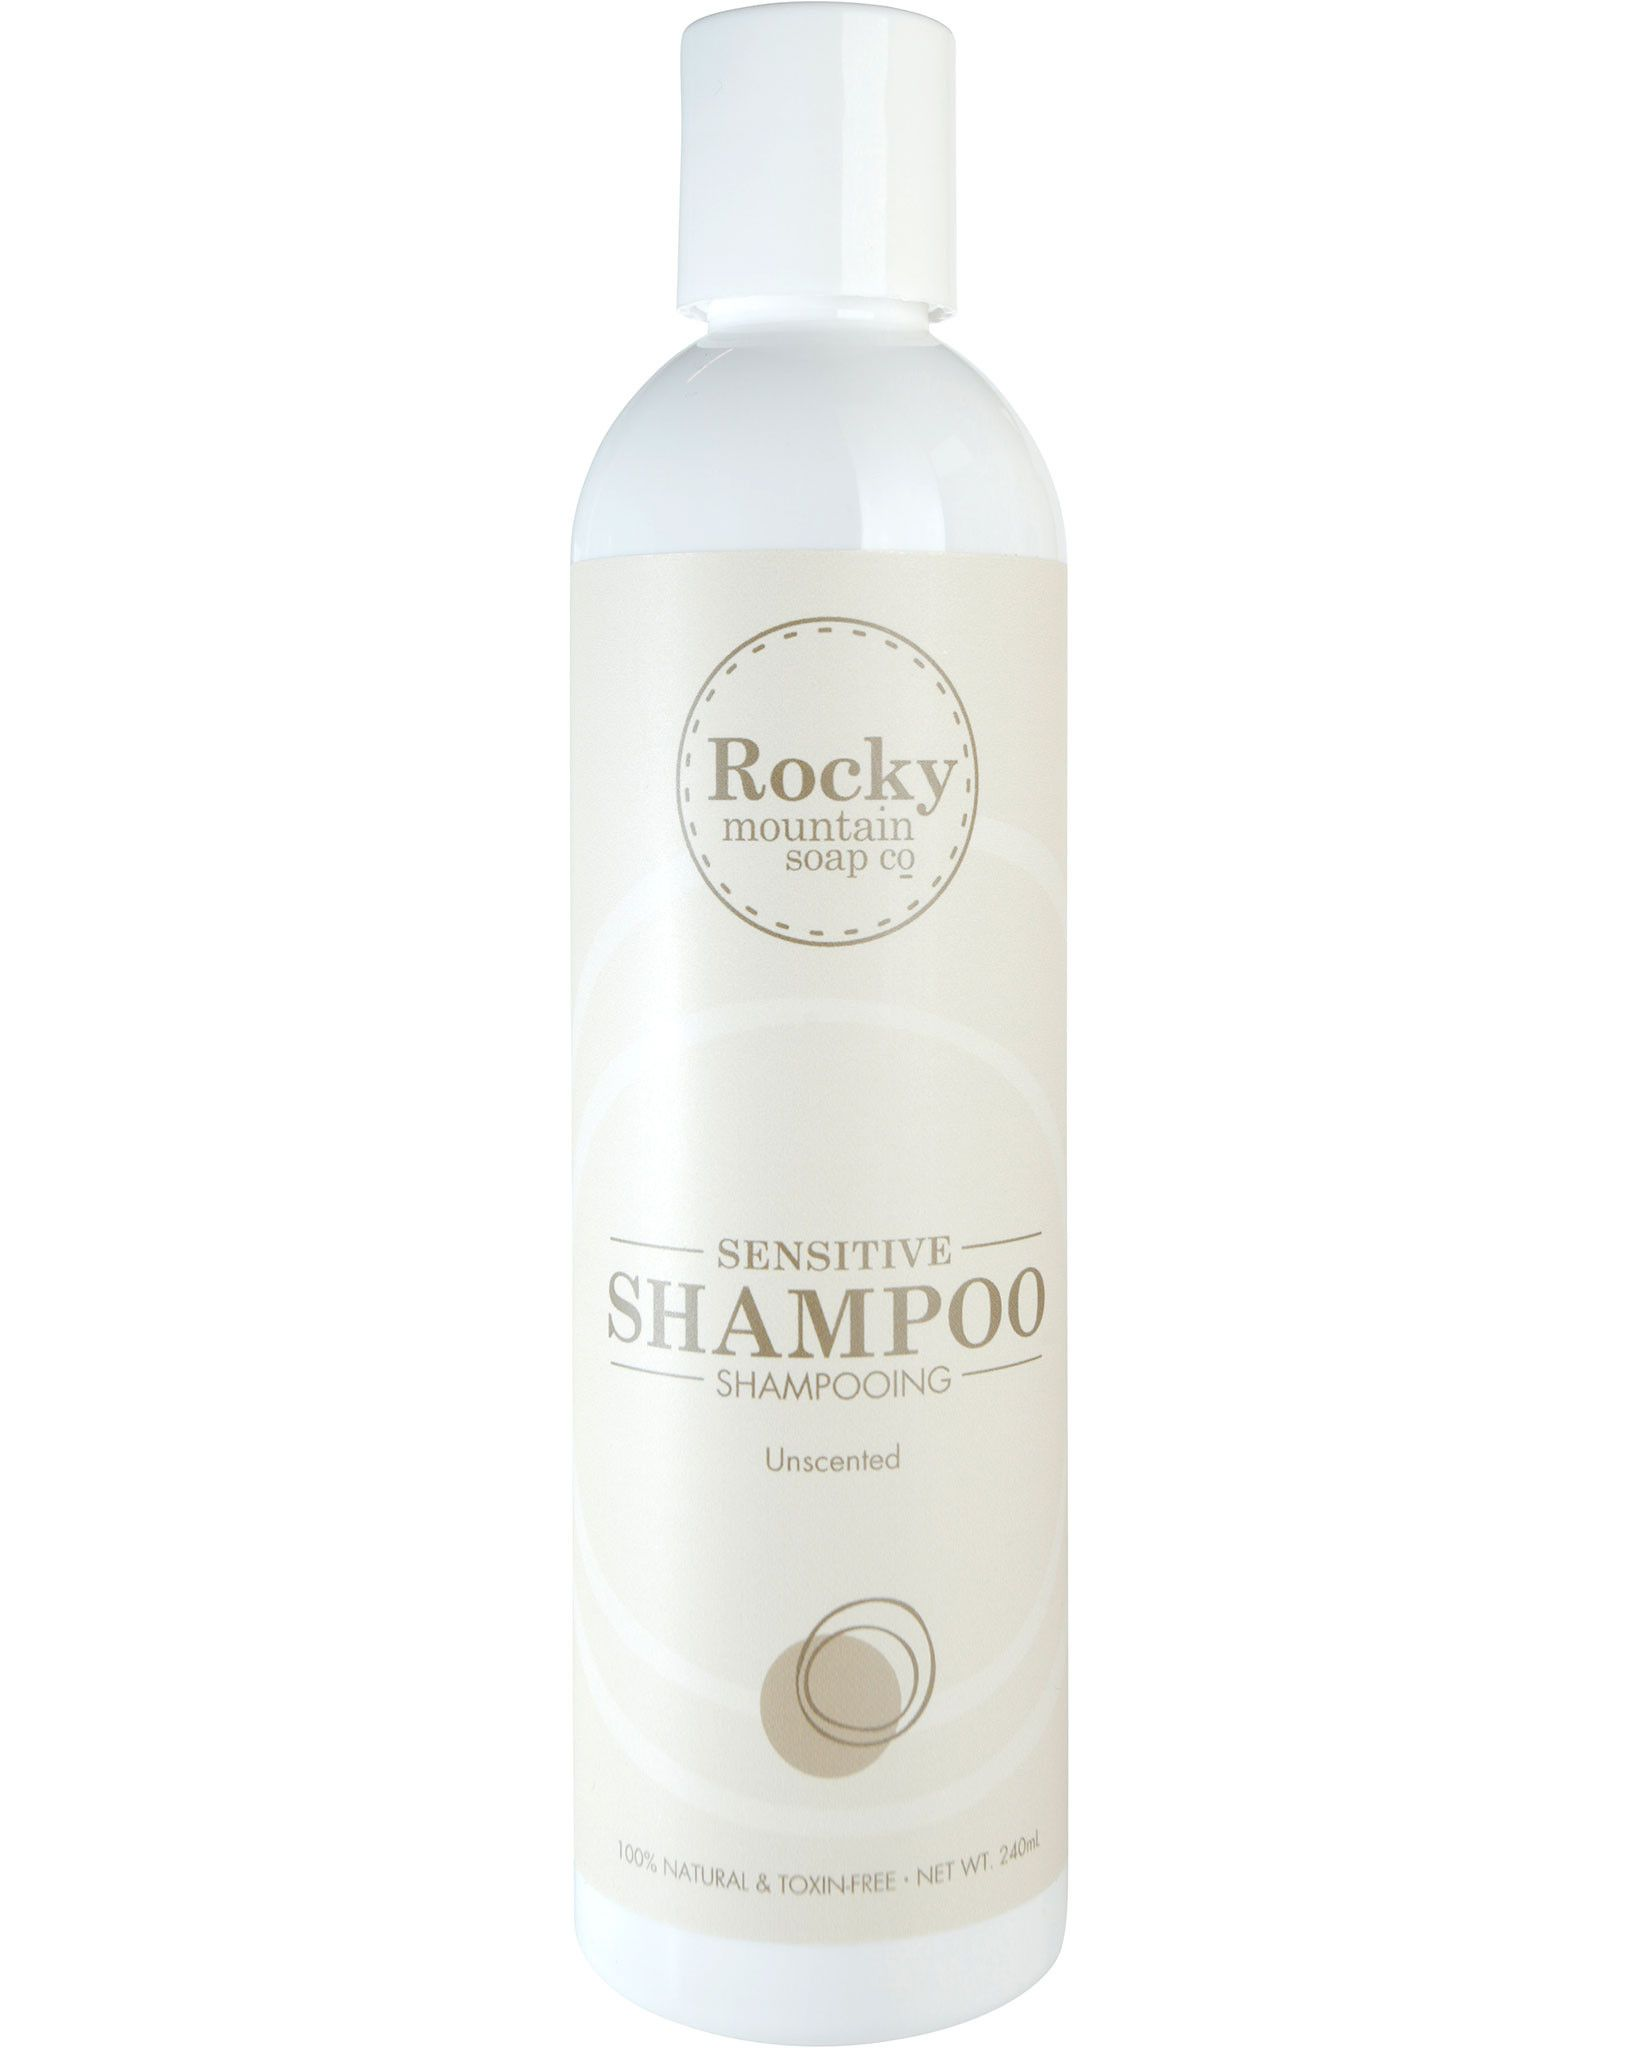 Scent Free Natural Shampoo Scent Free Shampoo Unscented Shampoo Unscented Body Lotion